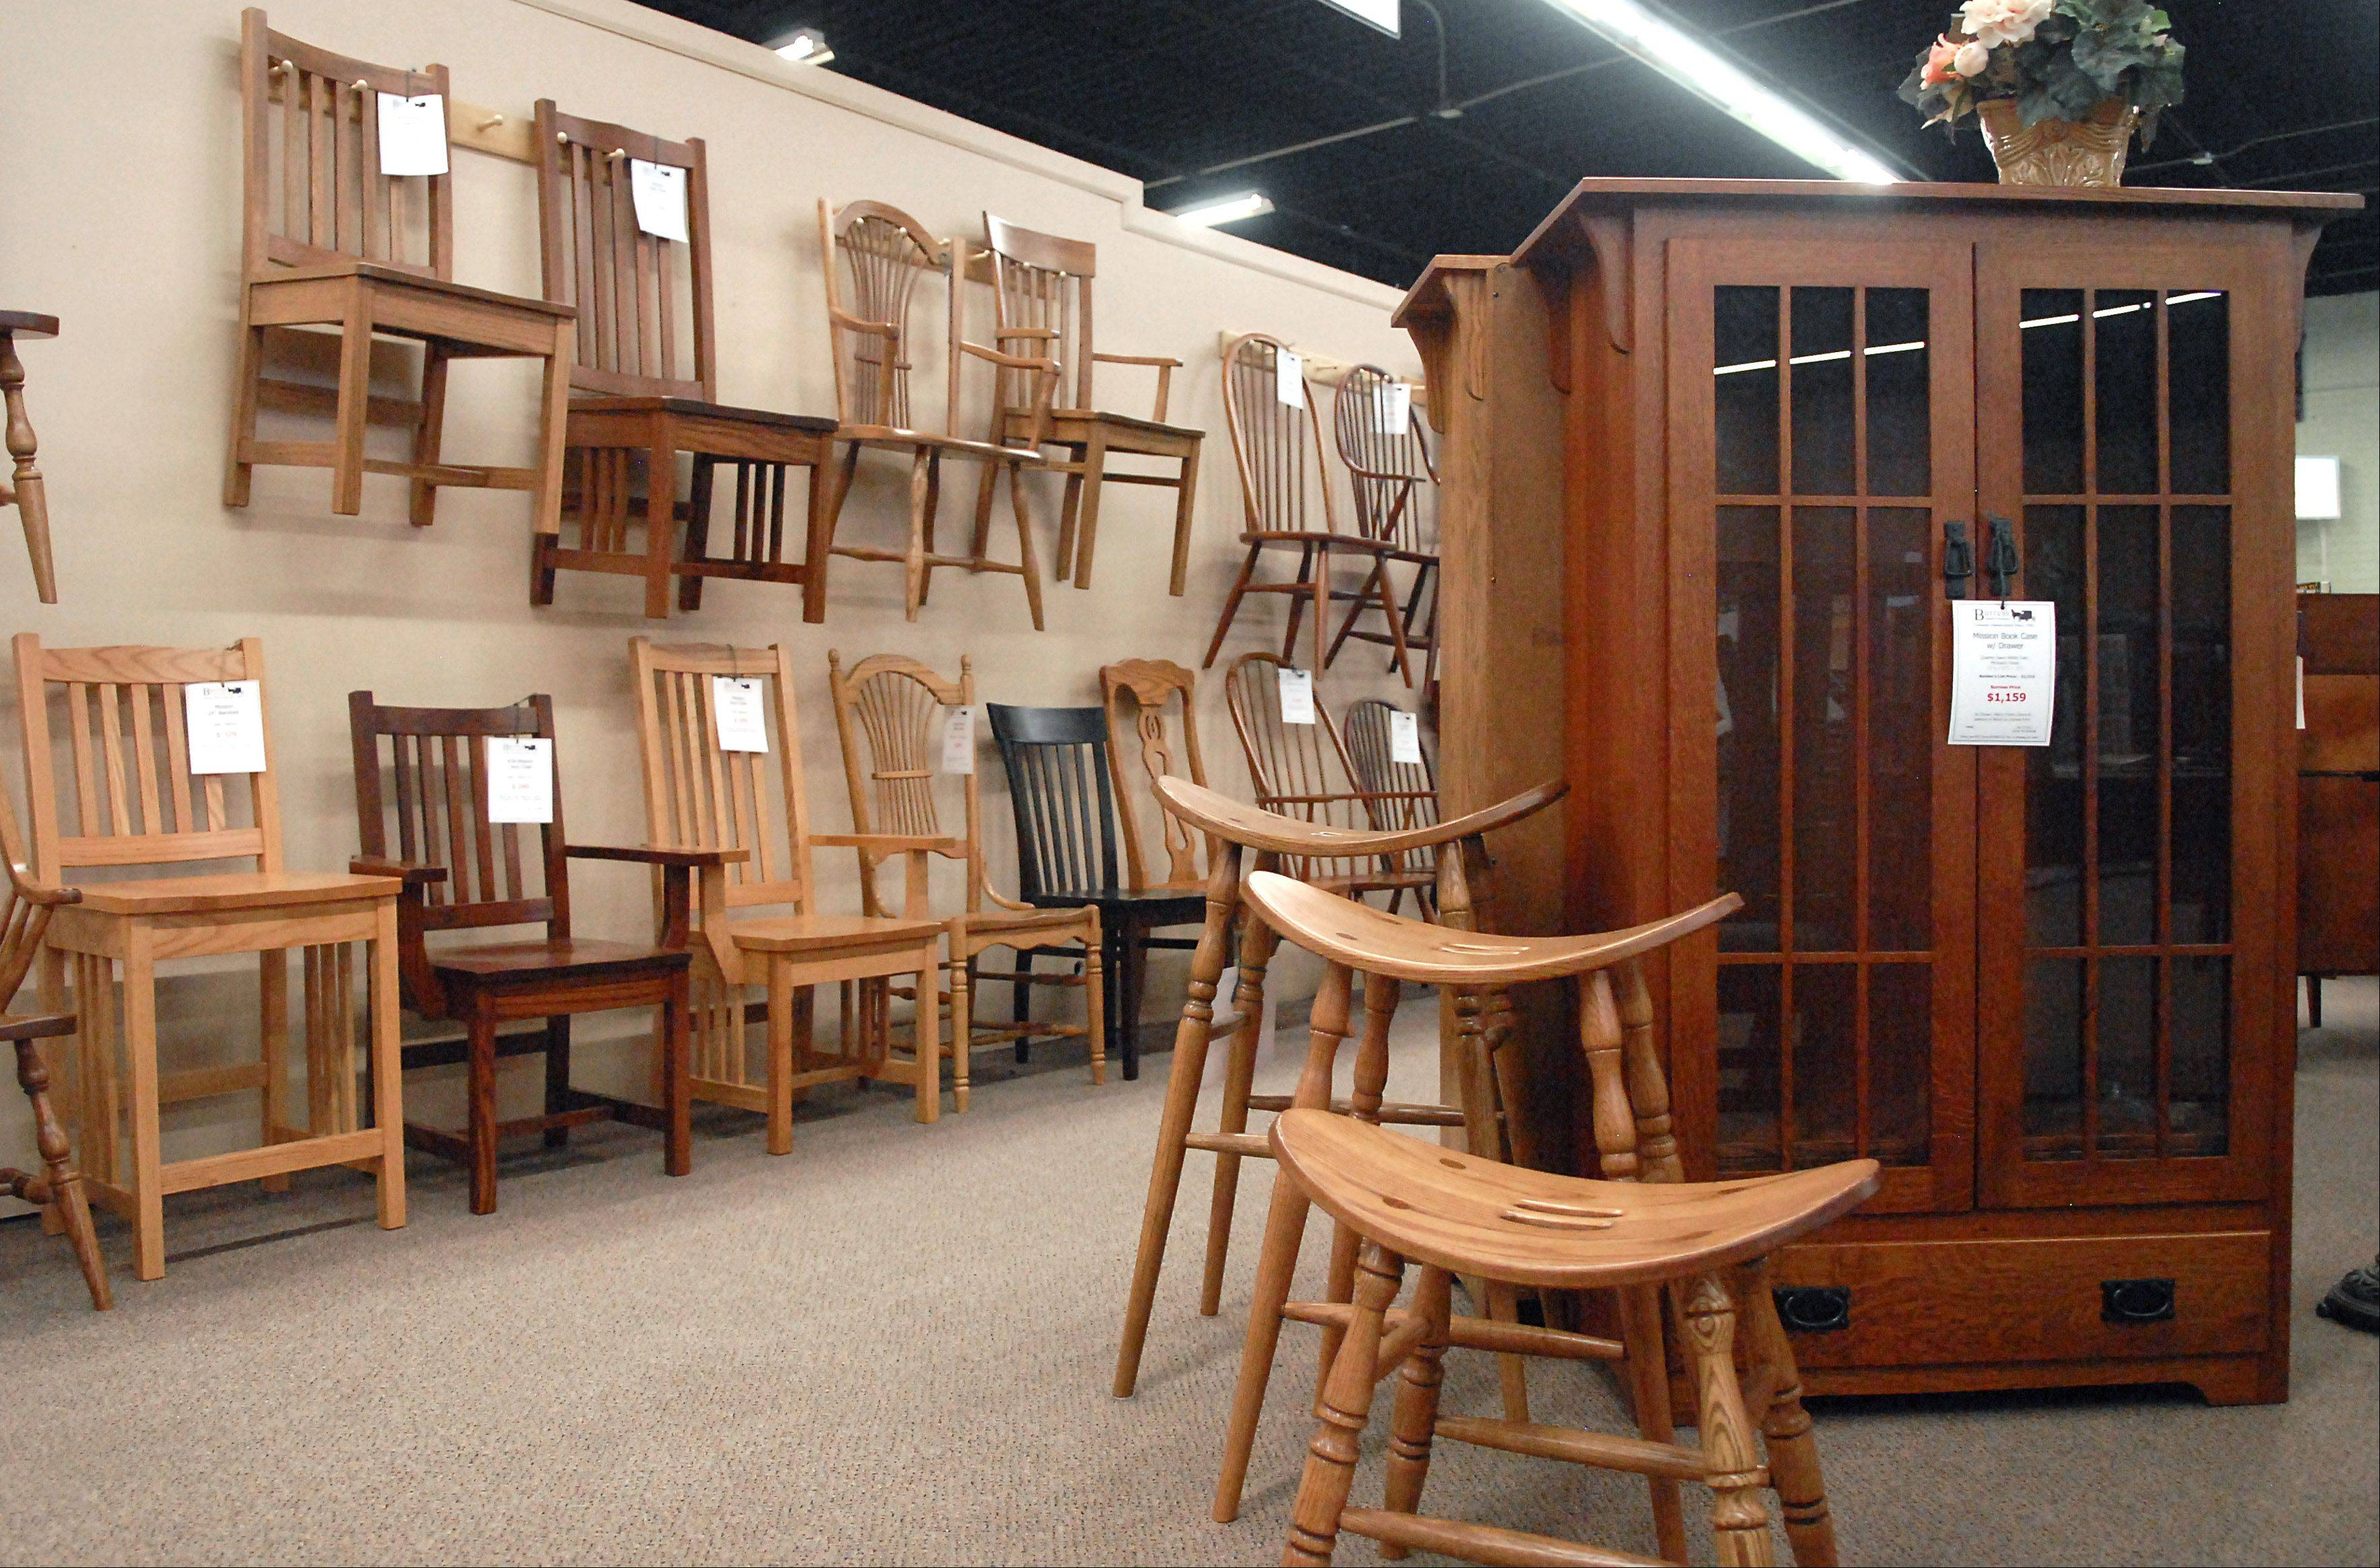 Different style chairs and curios at Burress Amish Furniture in Elgin.